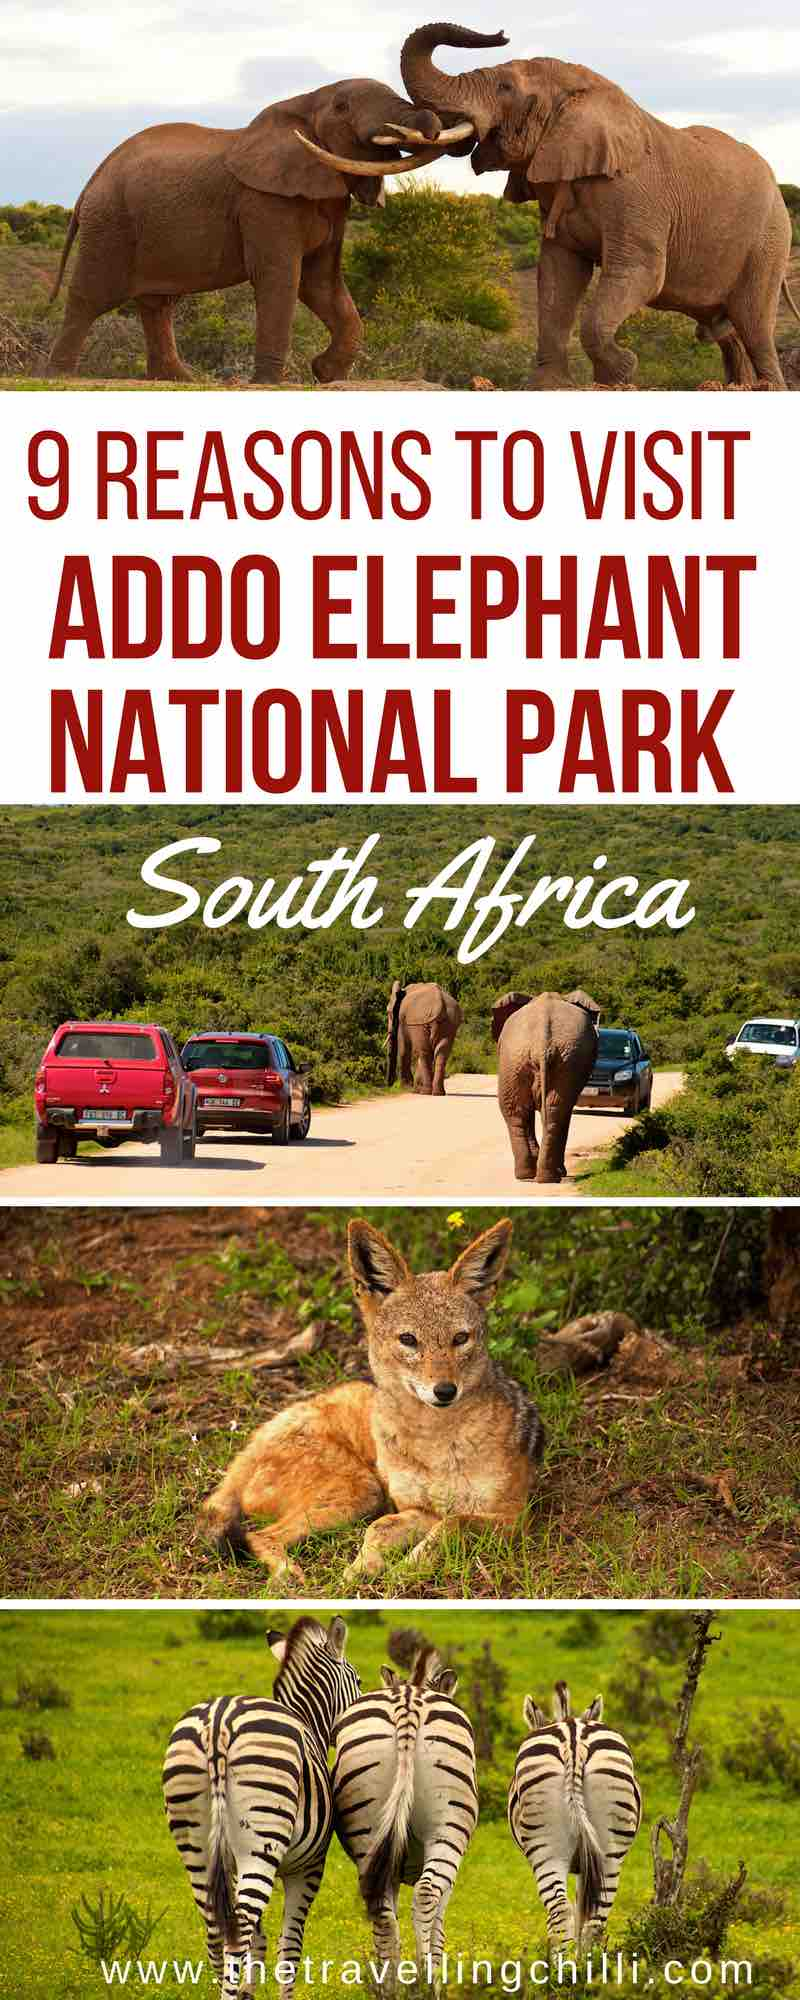 Best reasons to visit Addo Elephant park in South Africa. Addo park is close to Port Elizabeth as part of the Garden Route in South Africa. Addo national park is the best place to see the African elephant and of course many other wildlife in South Africa   safari in Addo Elephant park